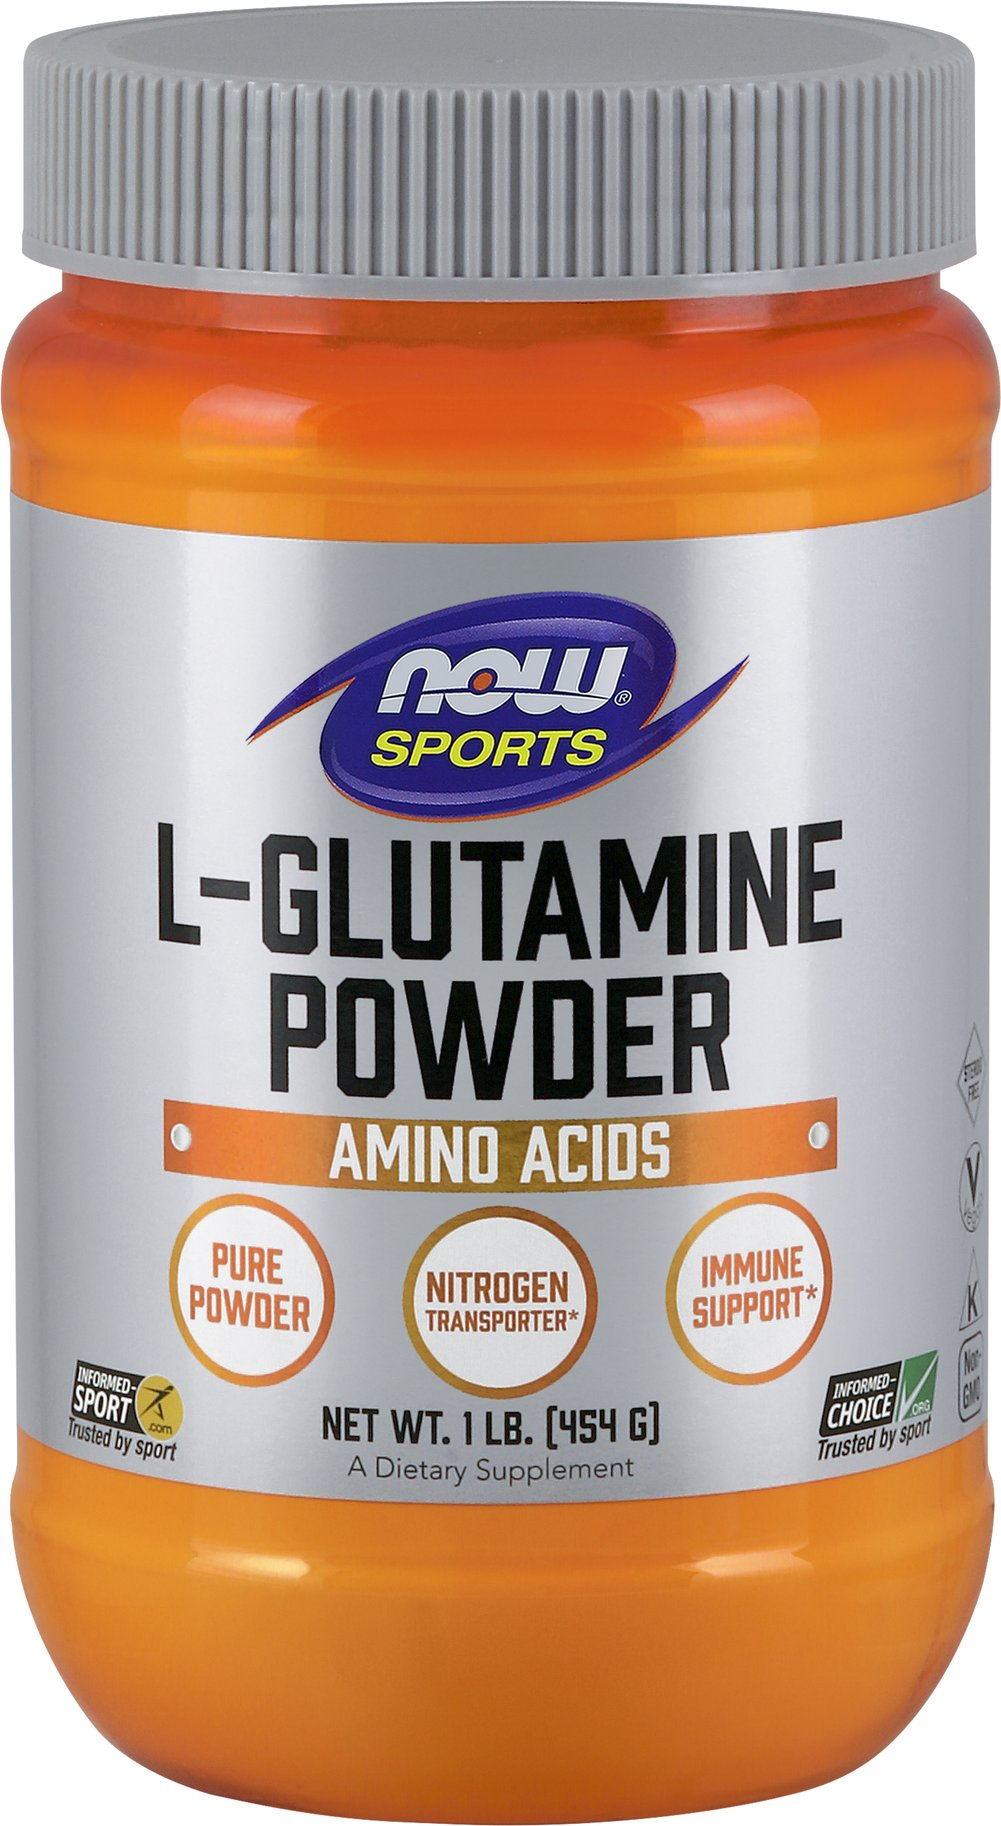 L-Glutamine Powder 5000 mg  1 lb Powder 5000 mg $23.99